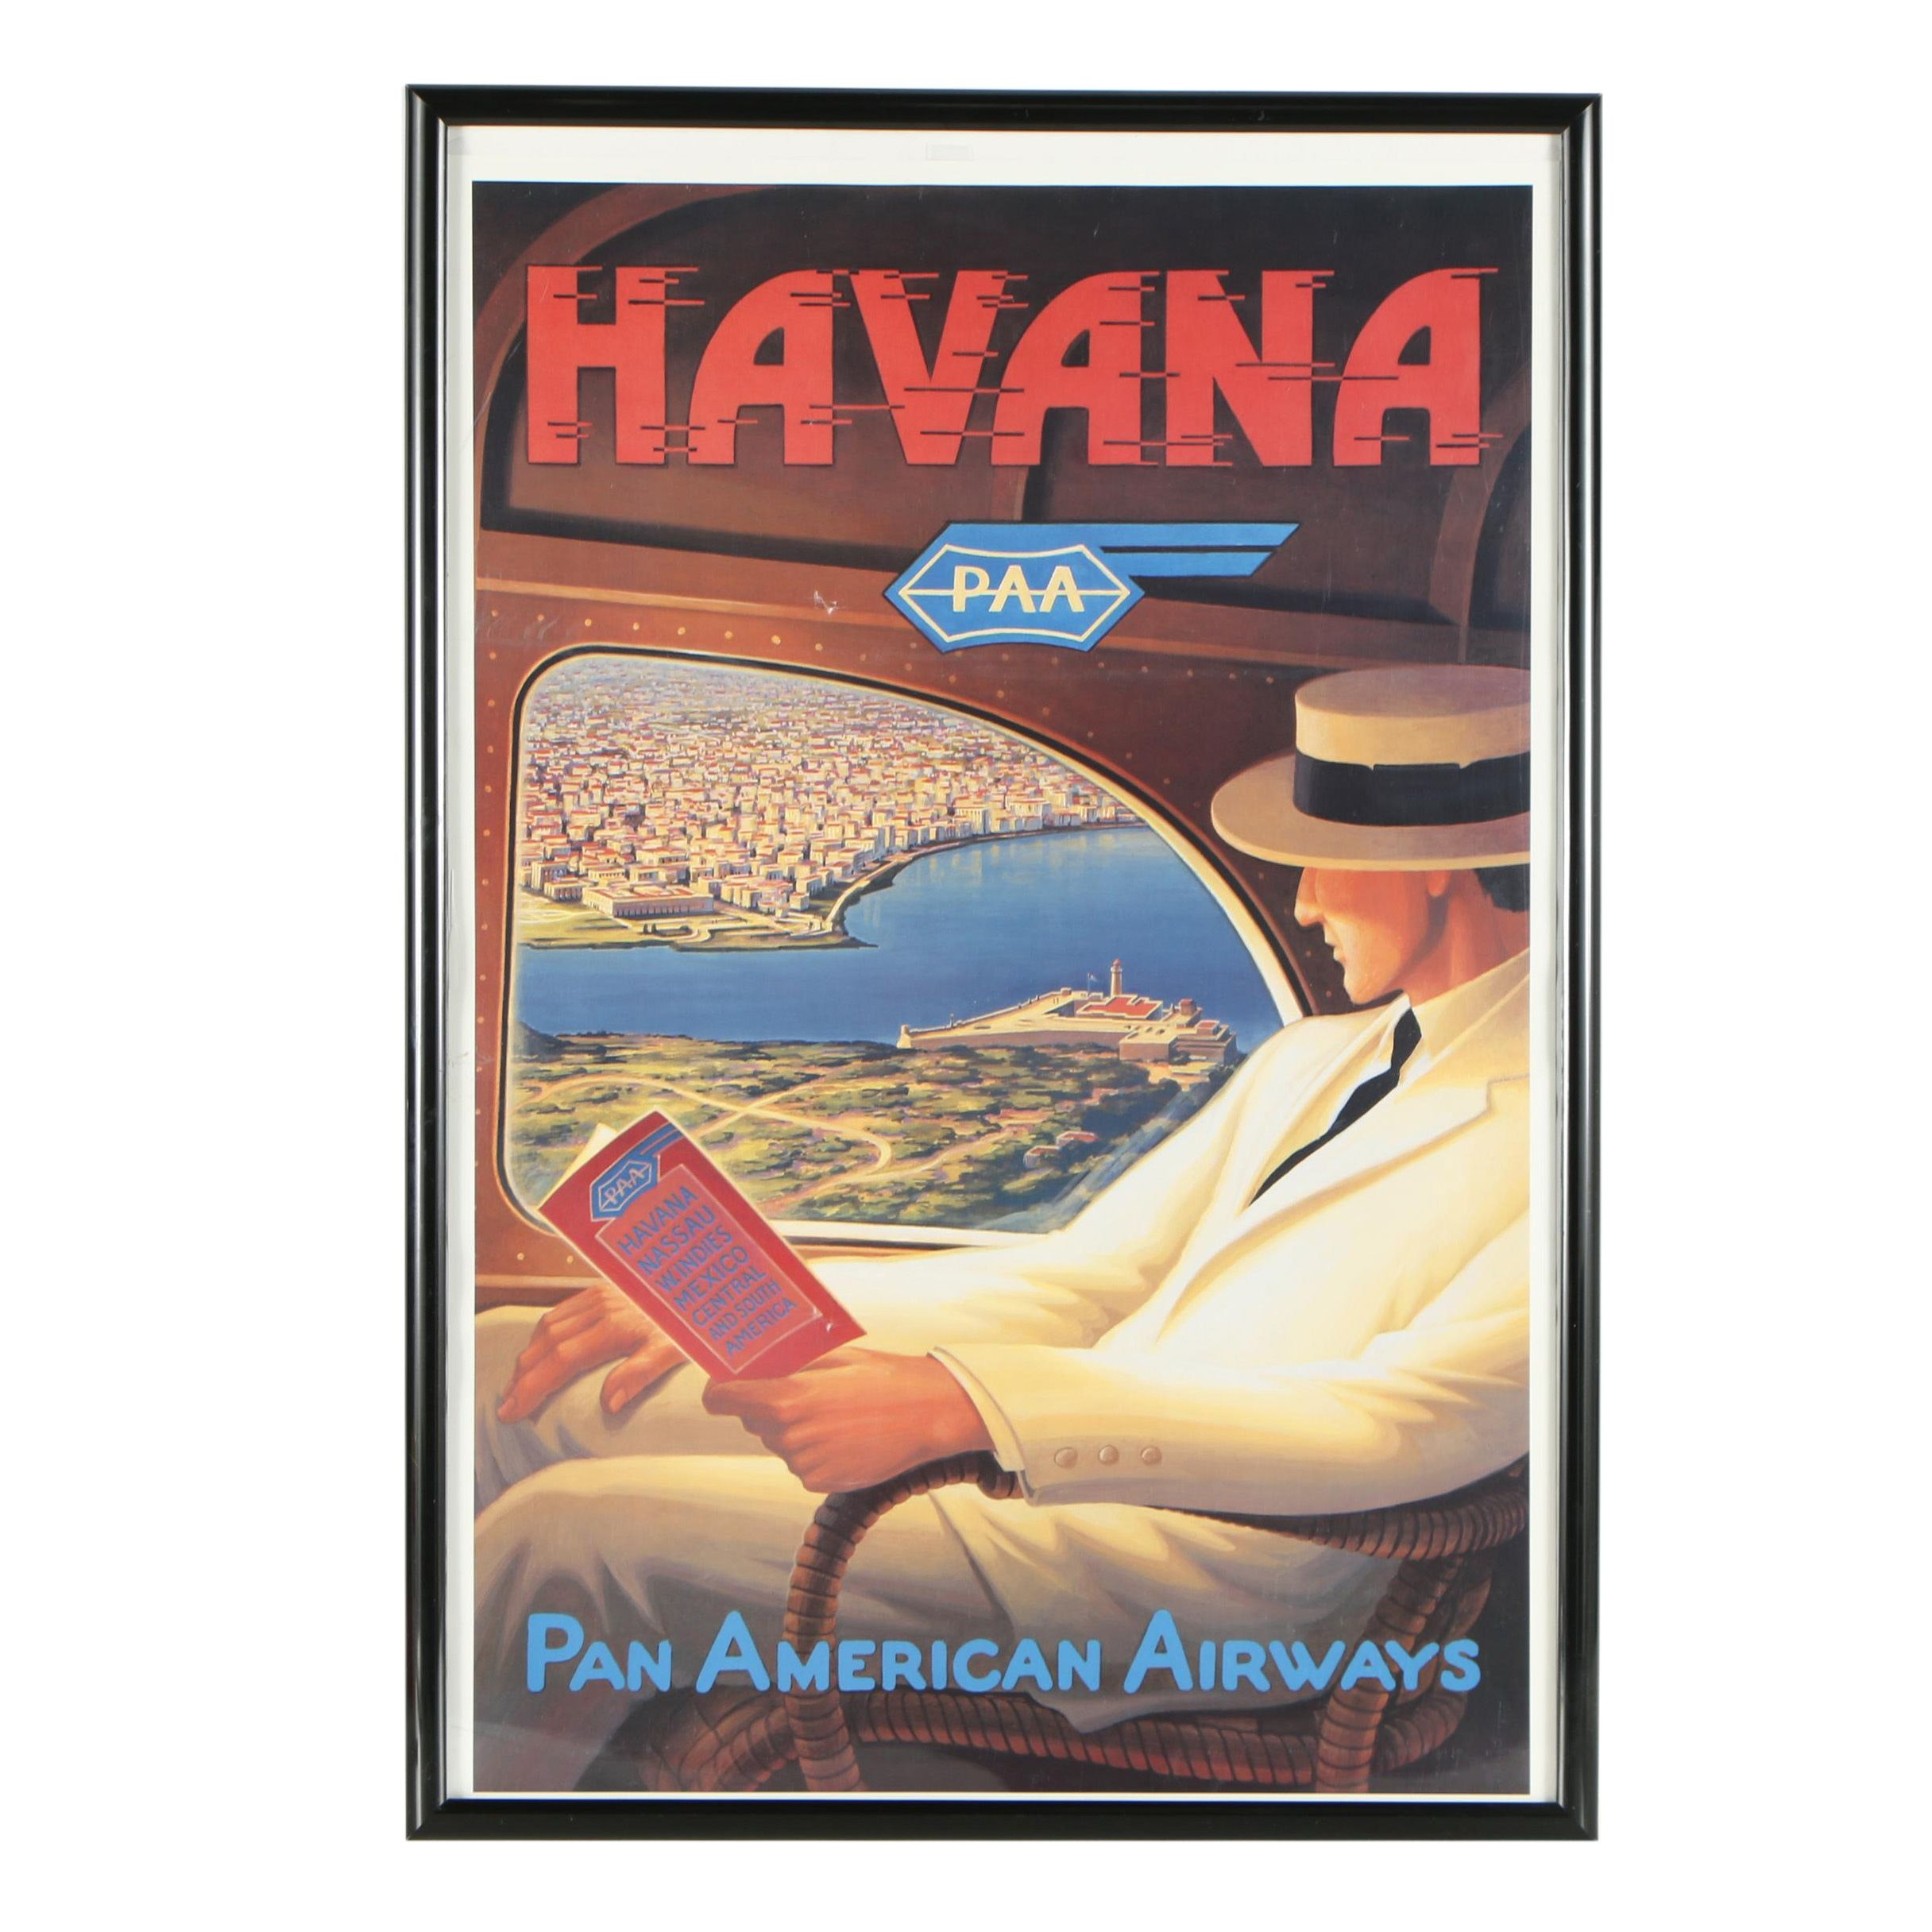 Reproduction Havana Travel Poster For Pan American Airways